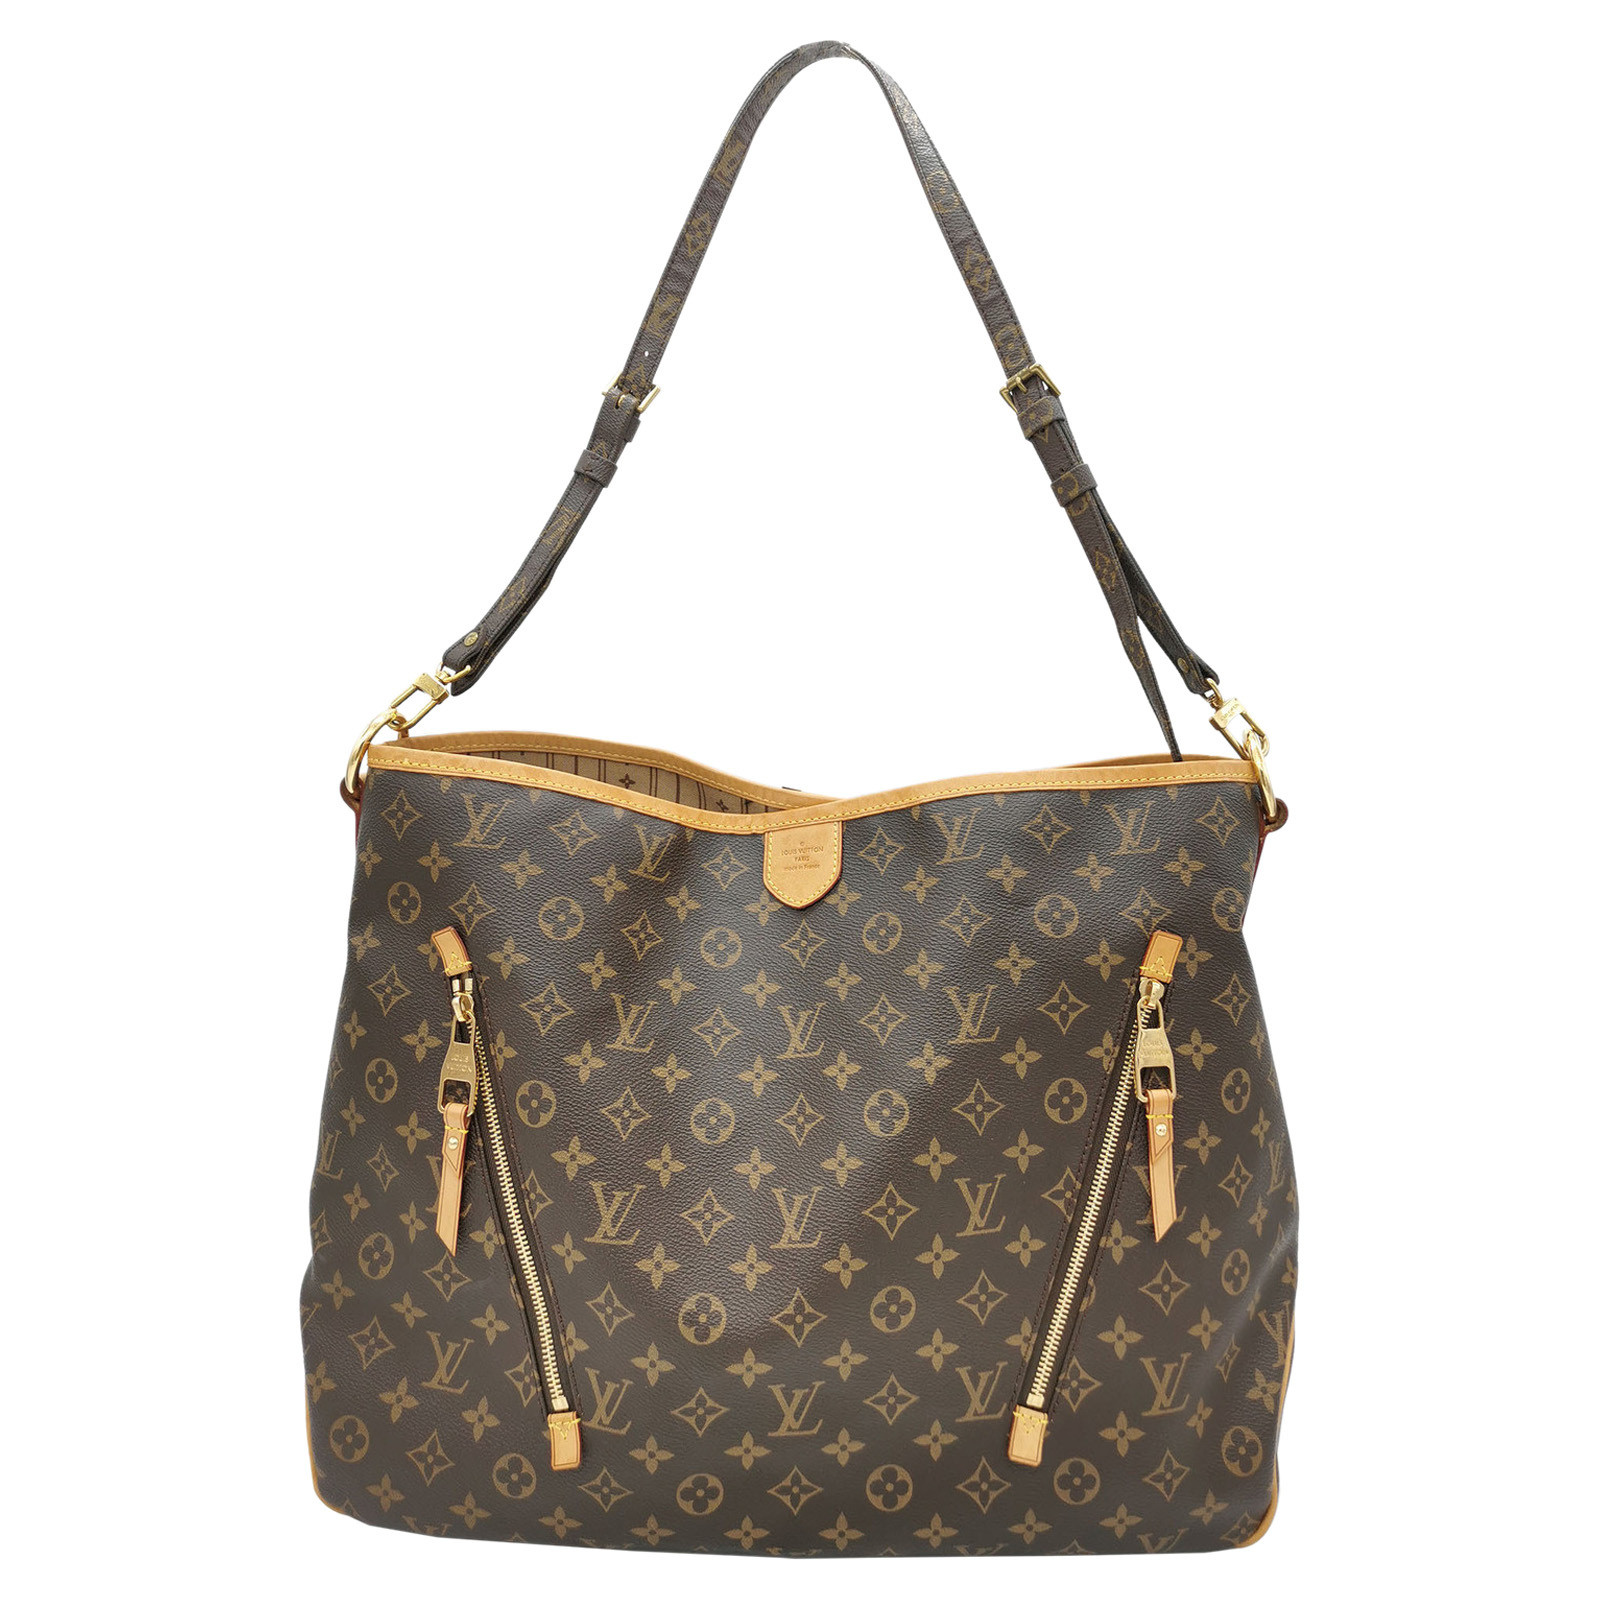 Louis Vuitton Delightful GM20 Canvas in Brown   Second Hand Louis ...